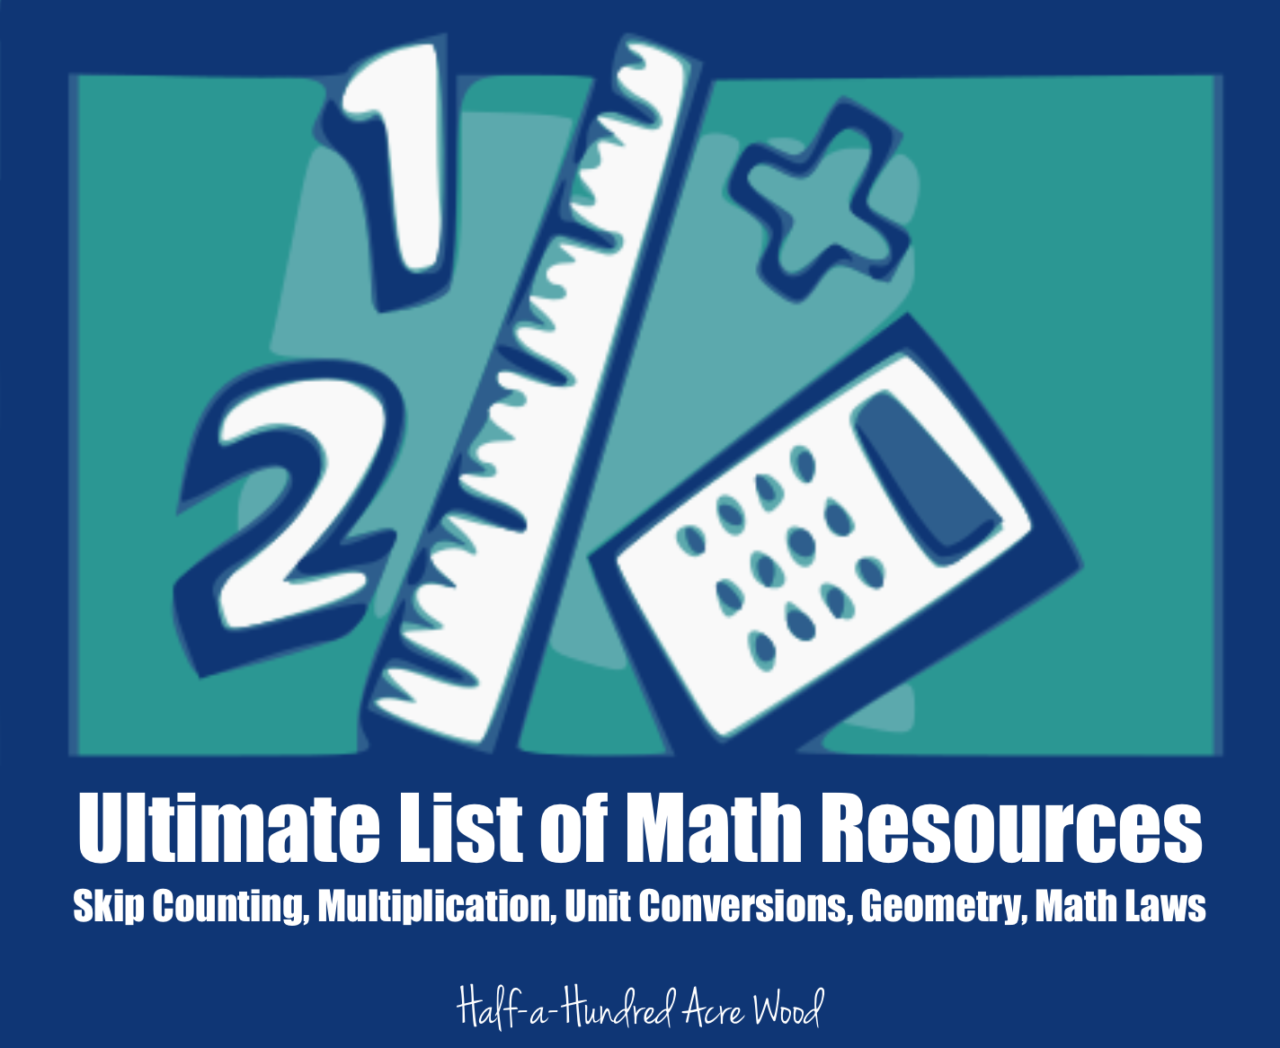 math resources Primary maths resources from tes includes maths worksheets and activities for addition, subtraction, multiplication, division, decimals and more for ks1 and 2.